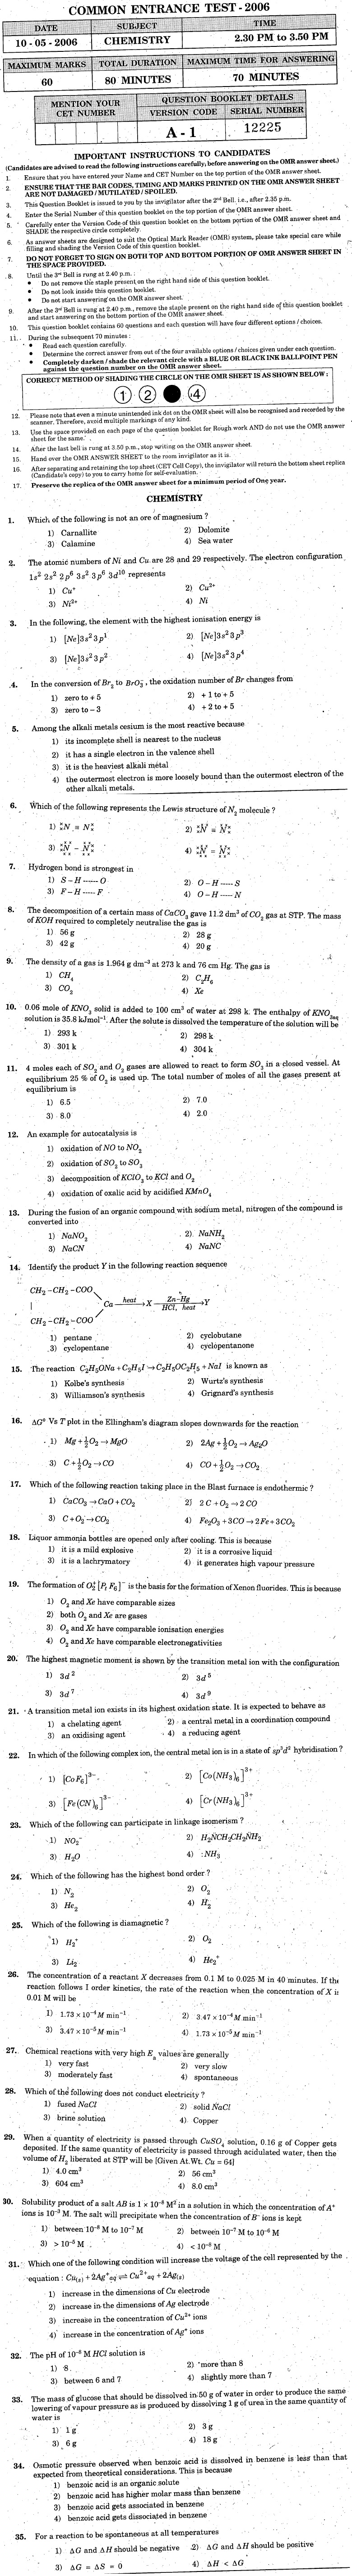 KCET 2006 Question Paper - Chemistry